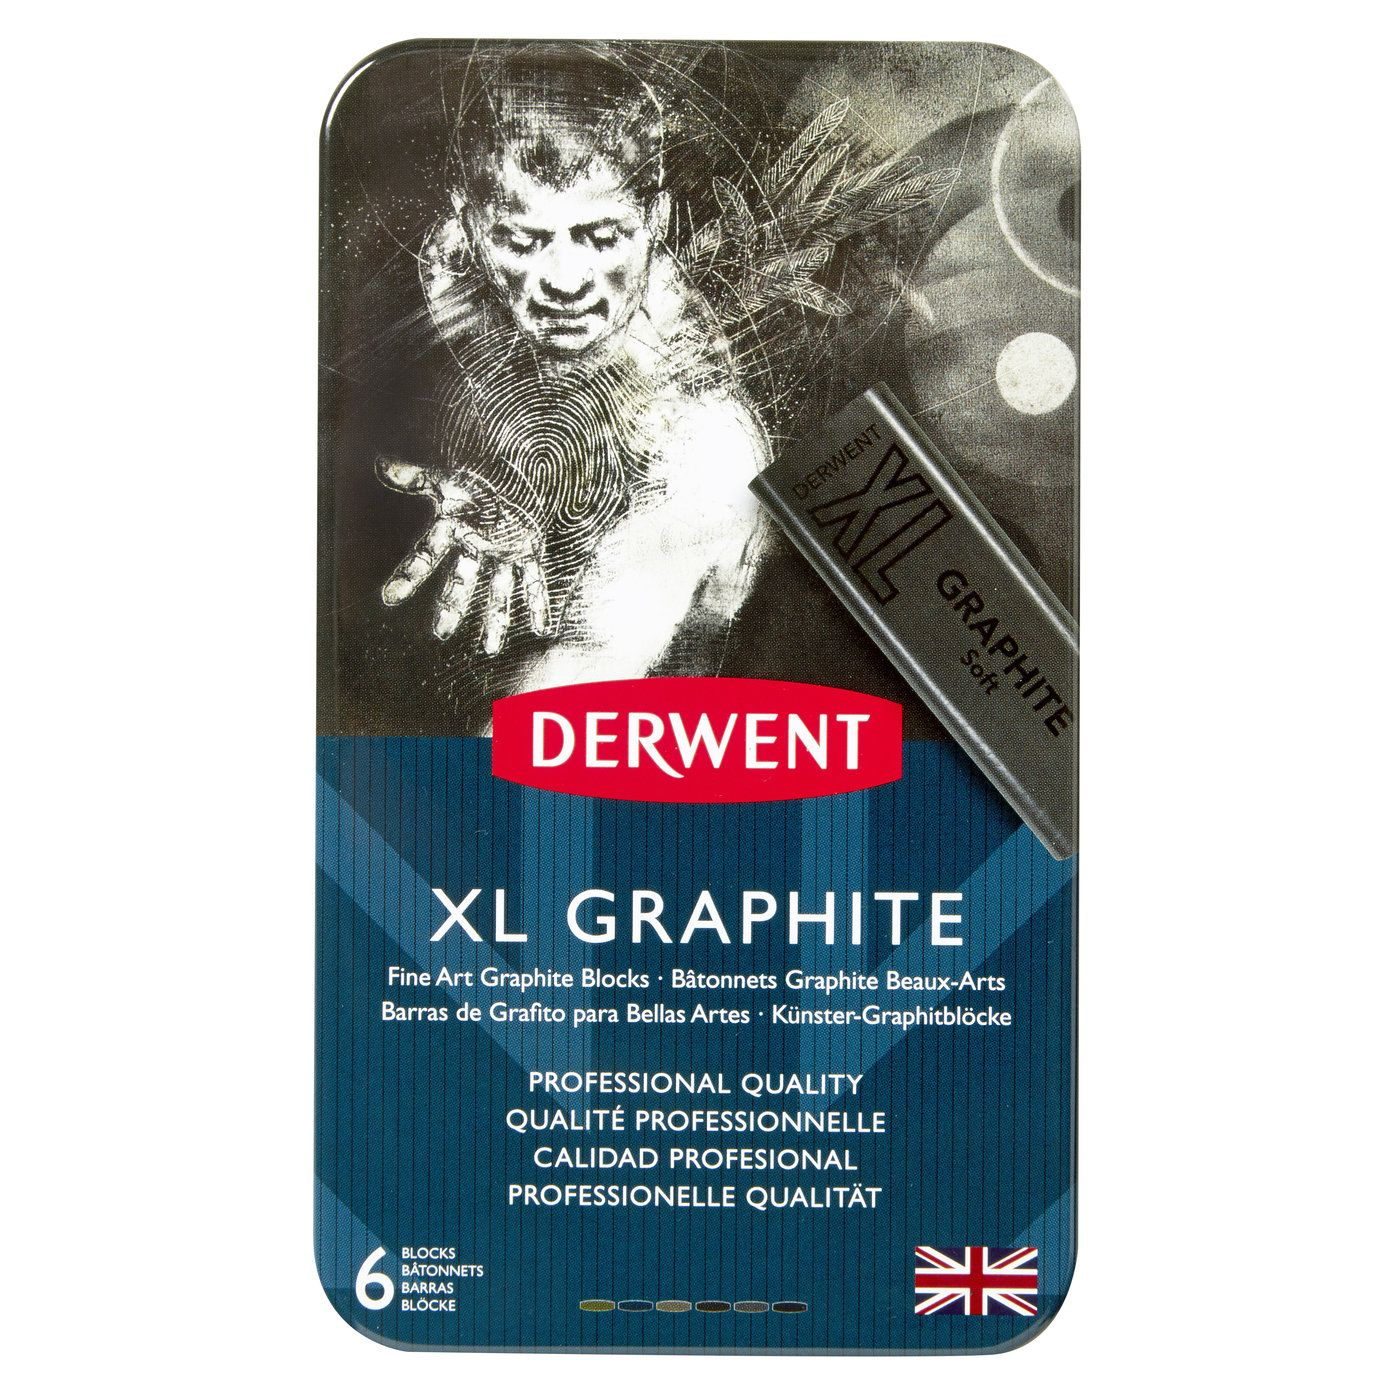 Derwent Graphite XL Blocks